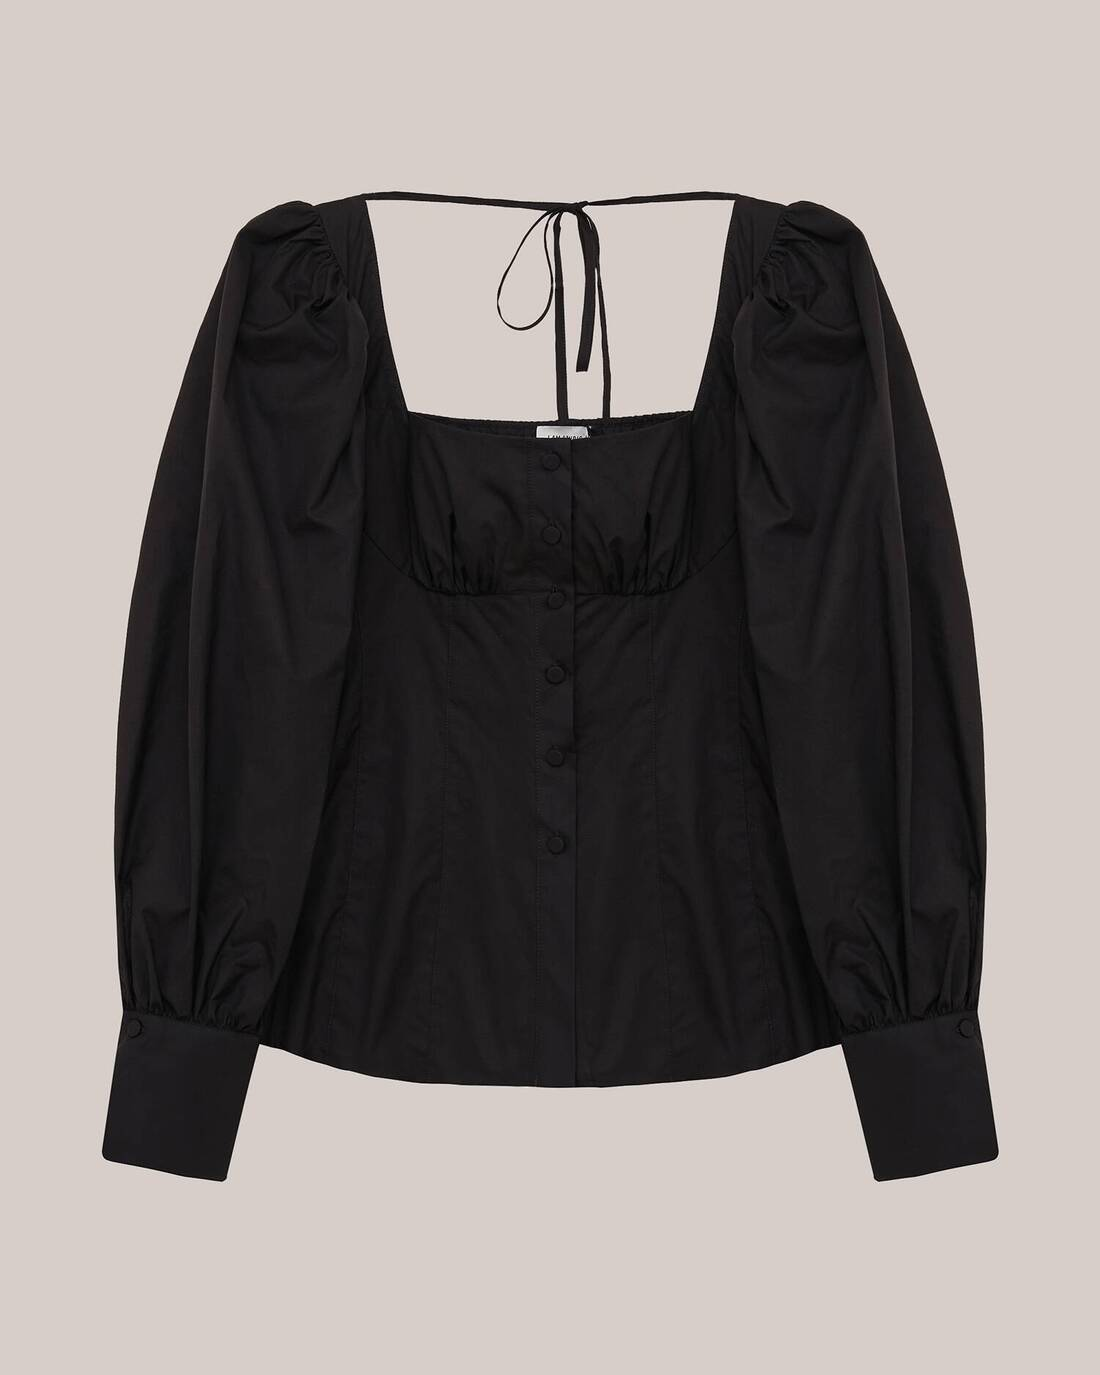 Cotton blouse with corset lines